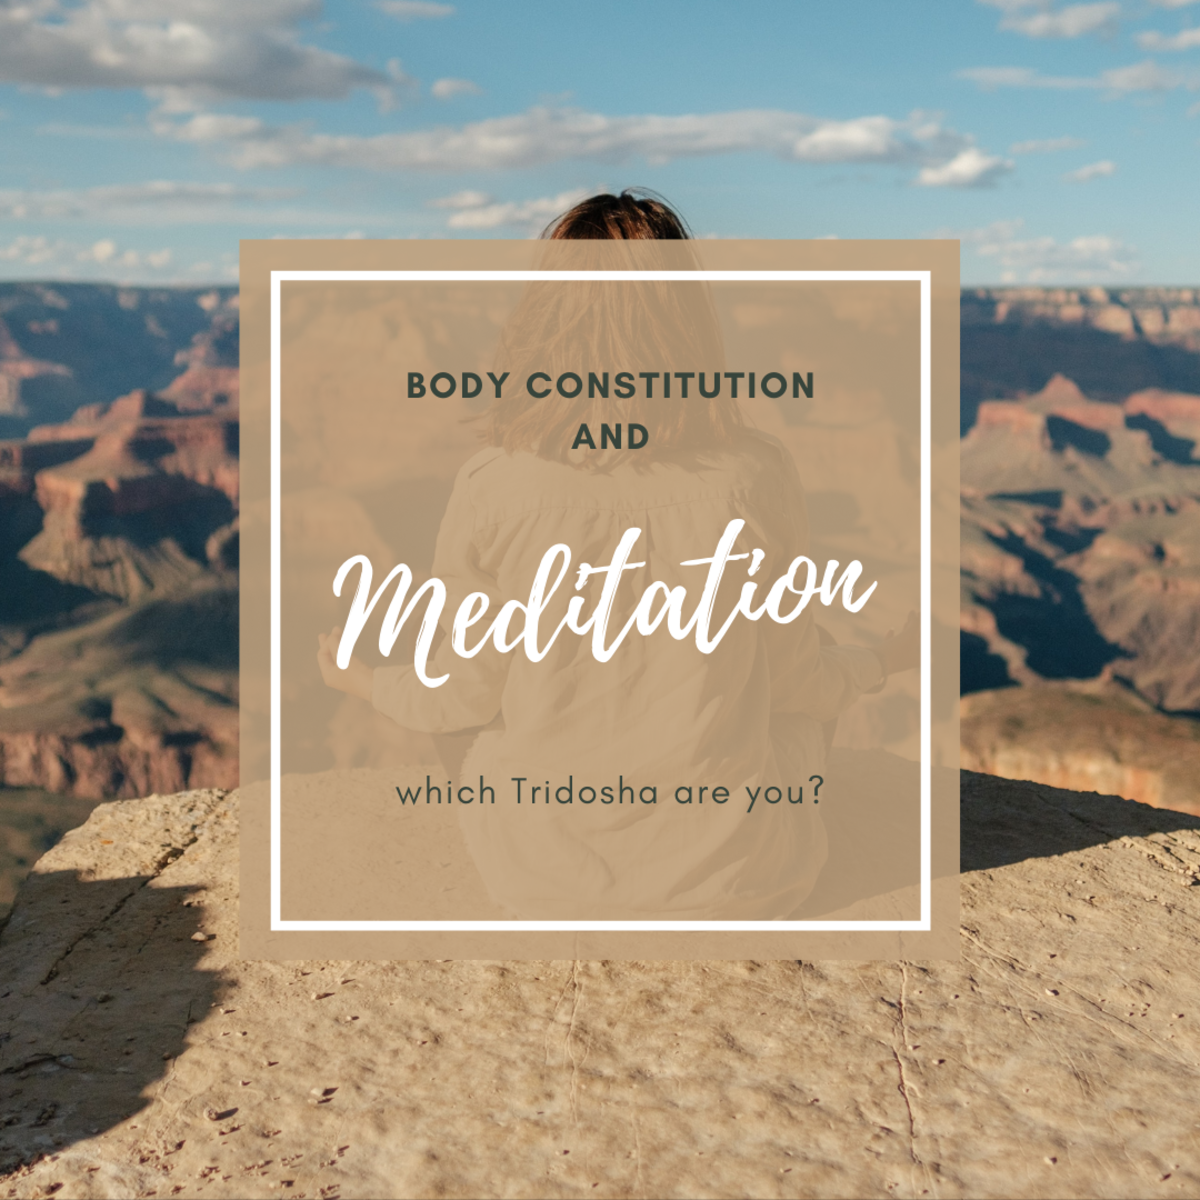 Meditate in Line With Your Body Constitution